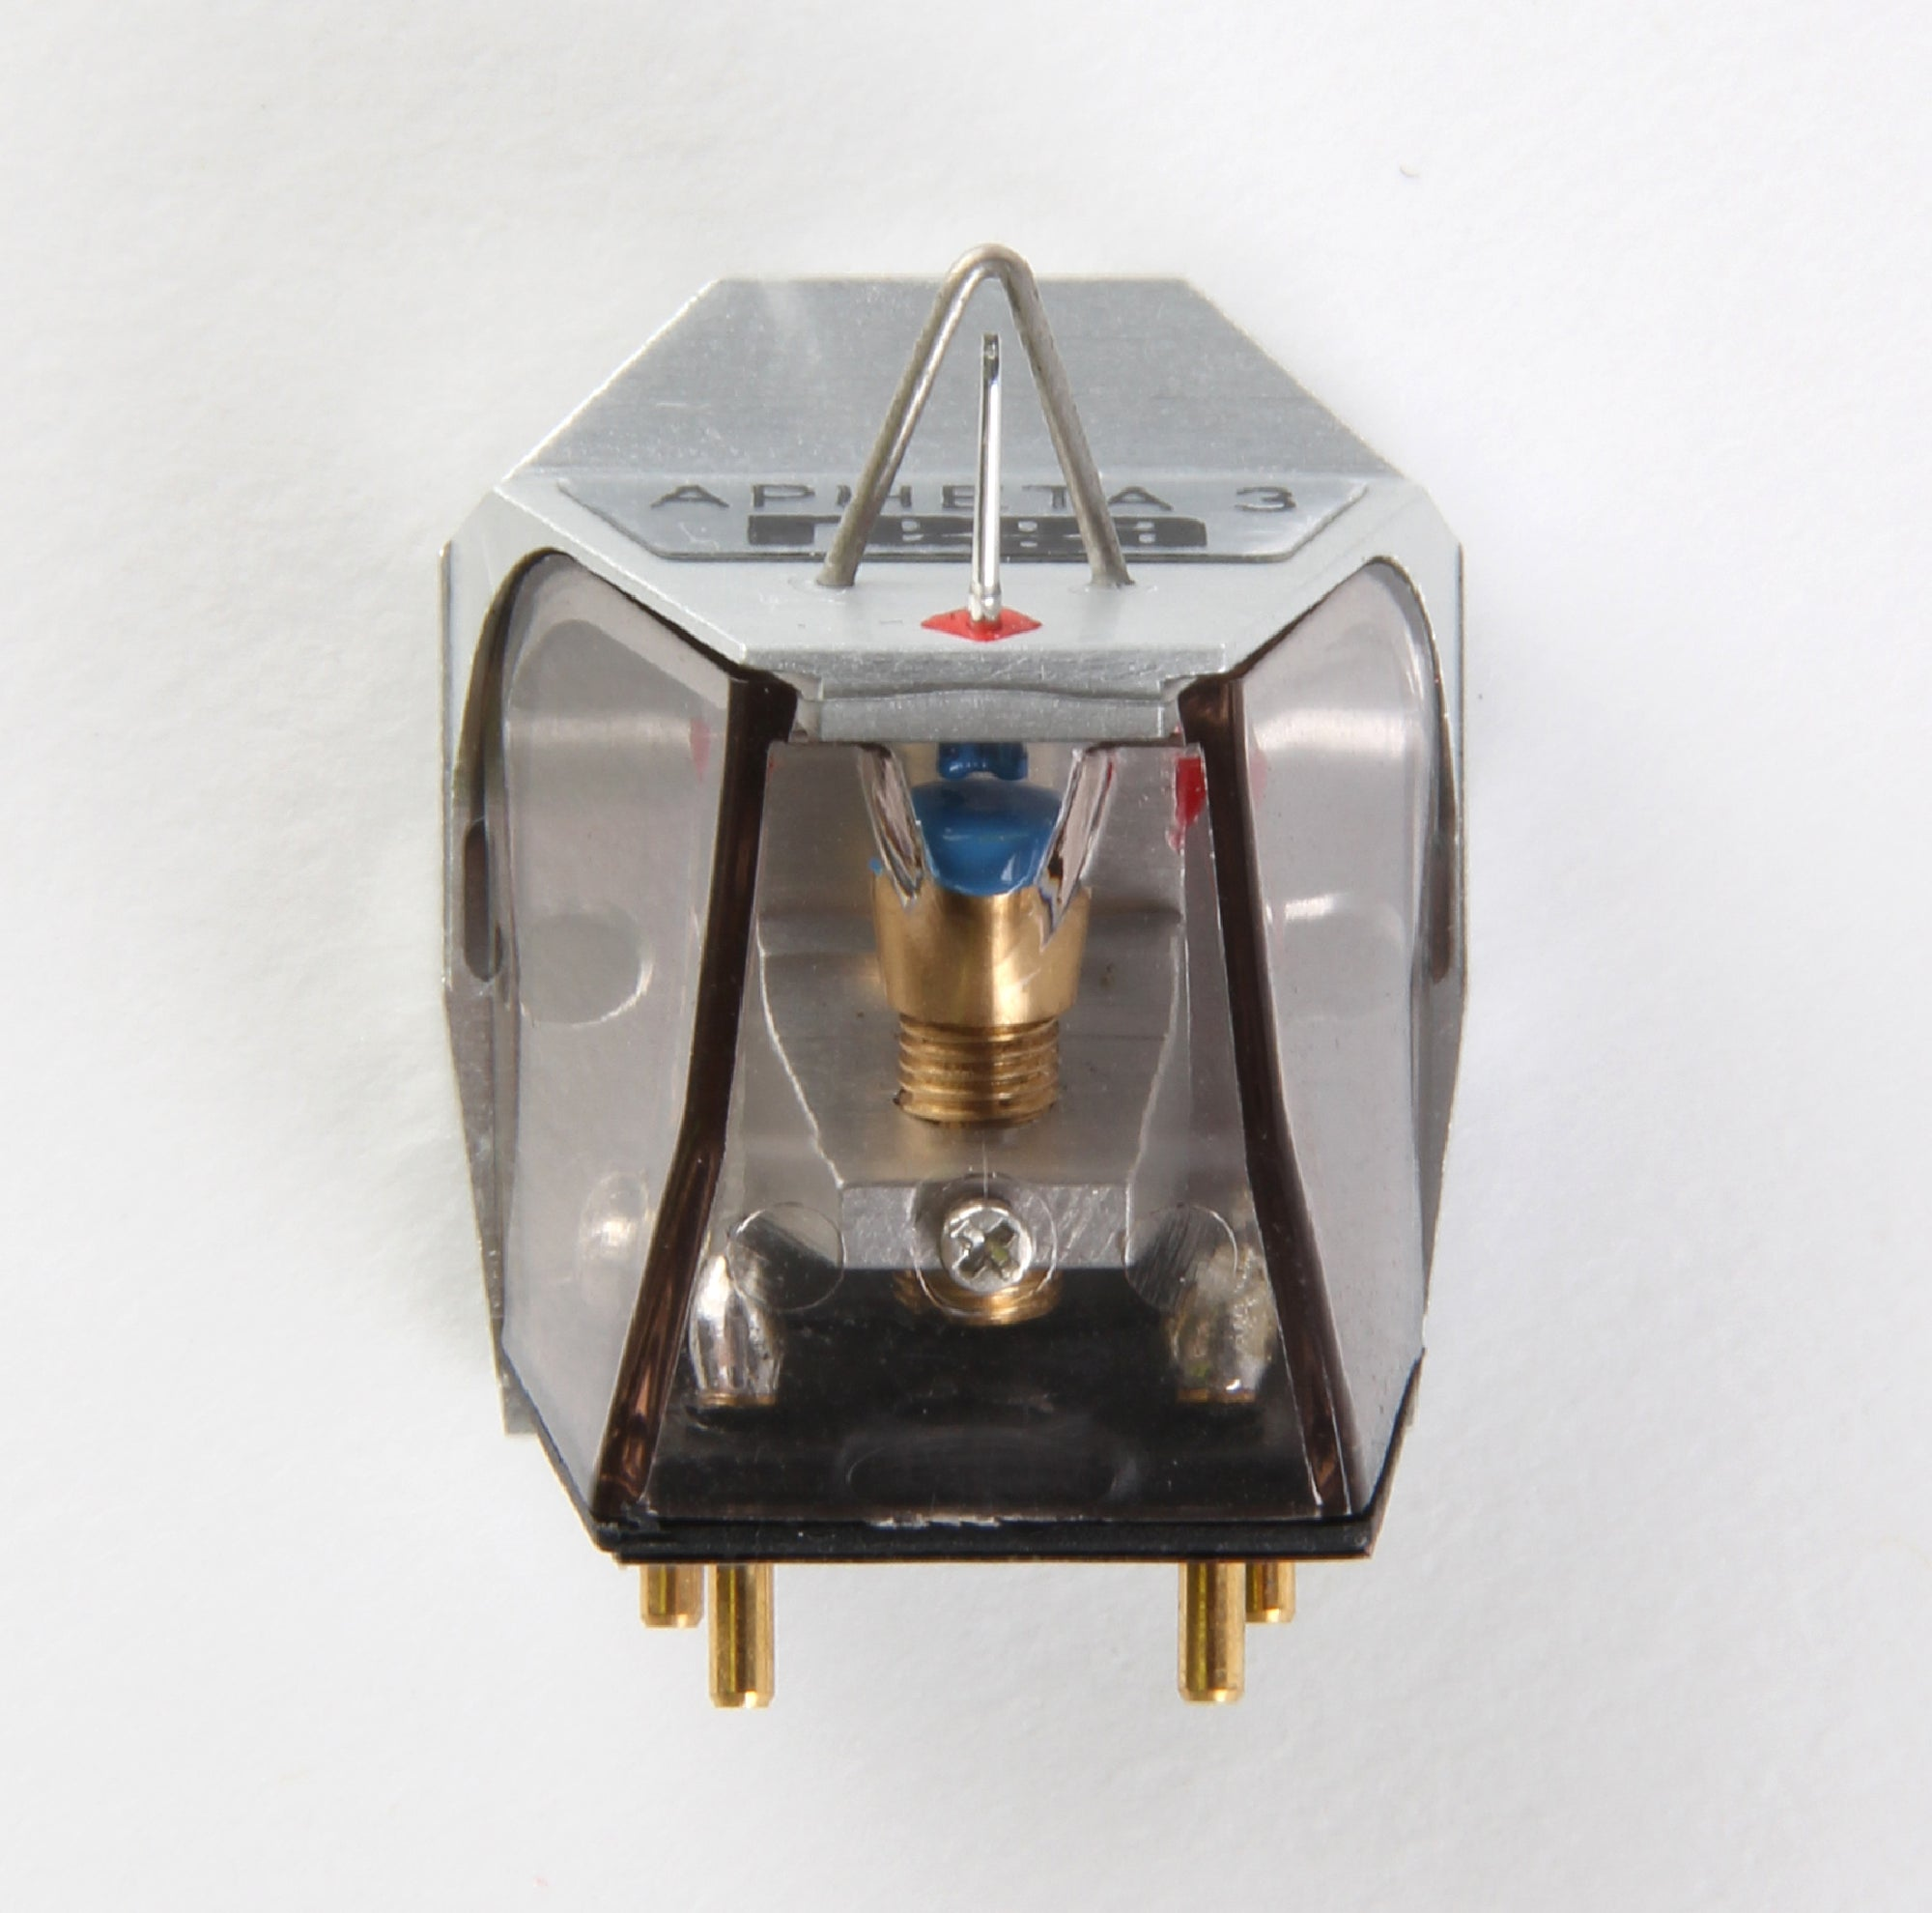 Apheta 3 MC Cartridge